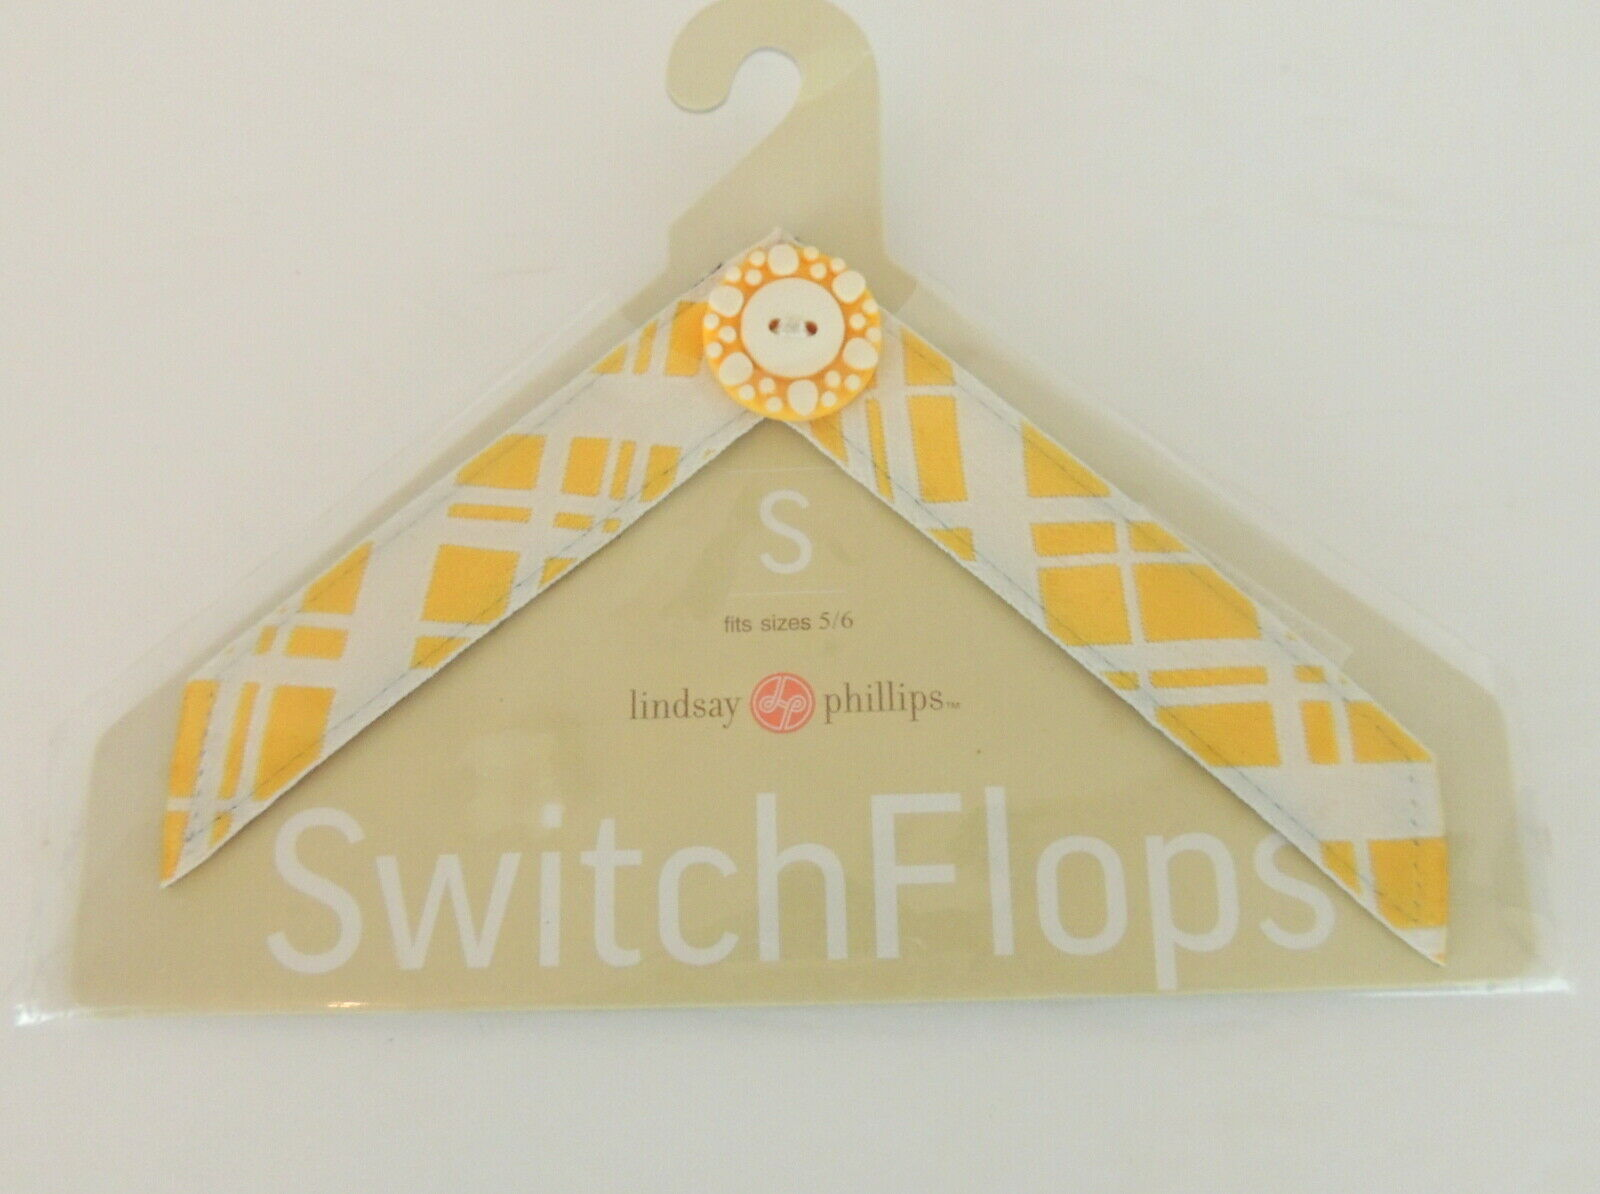 Lindsey- Phillips Switch Flops Womens S Yellow Plaid